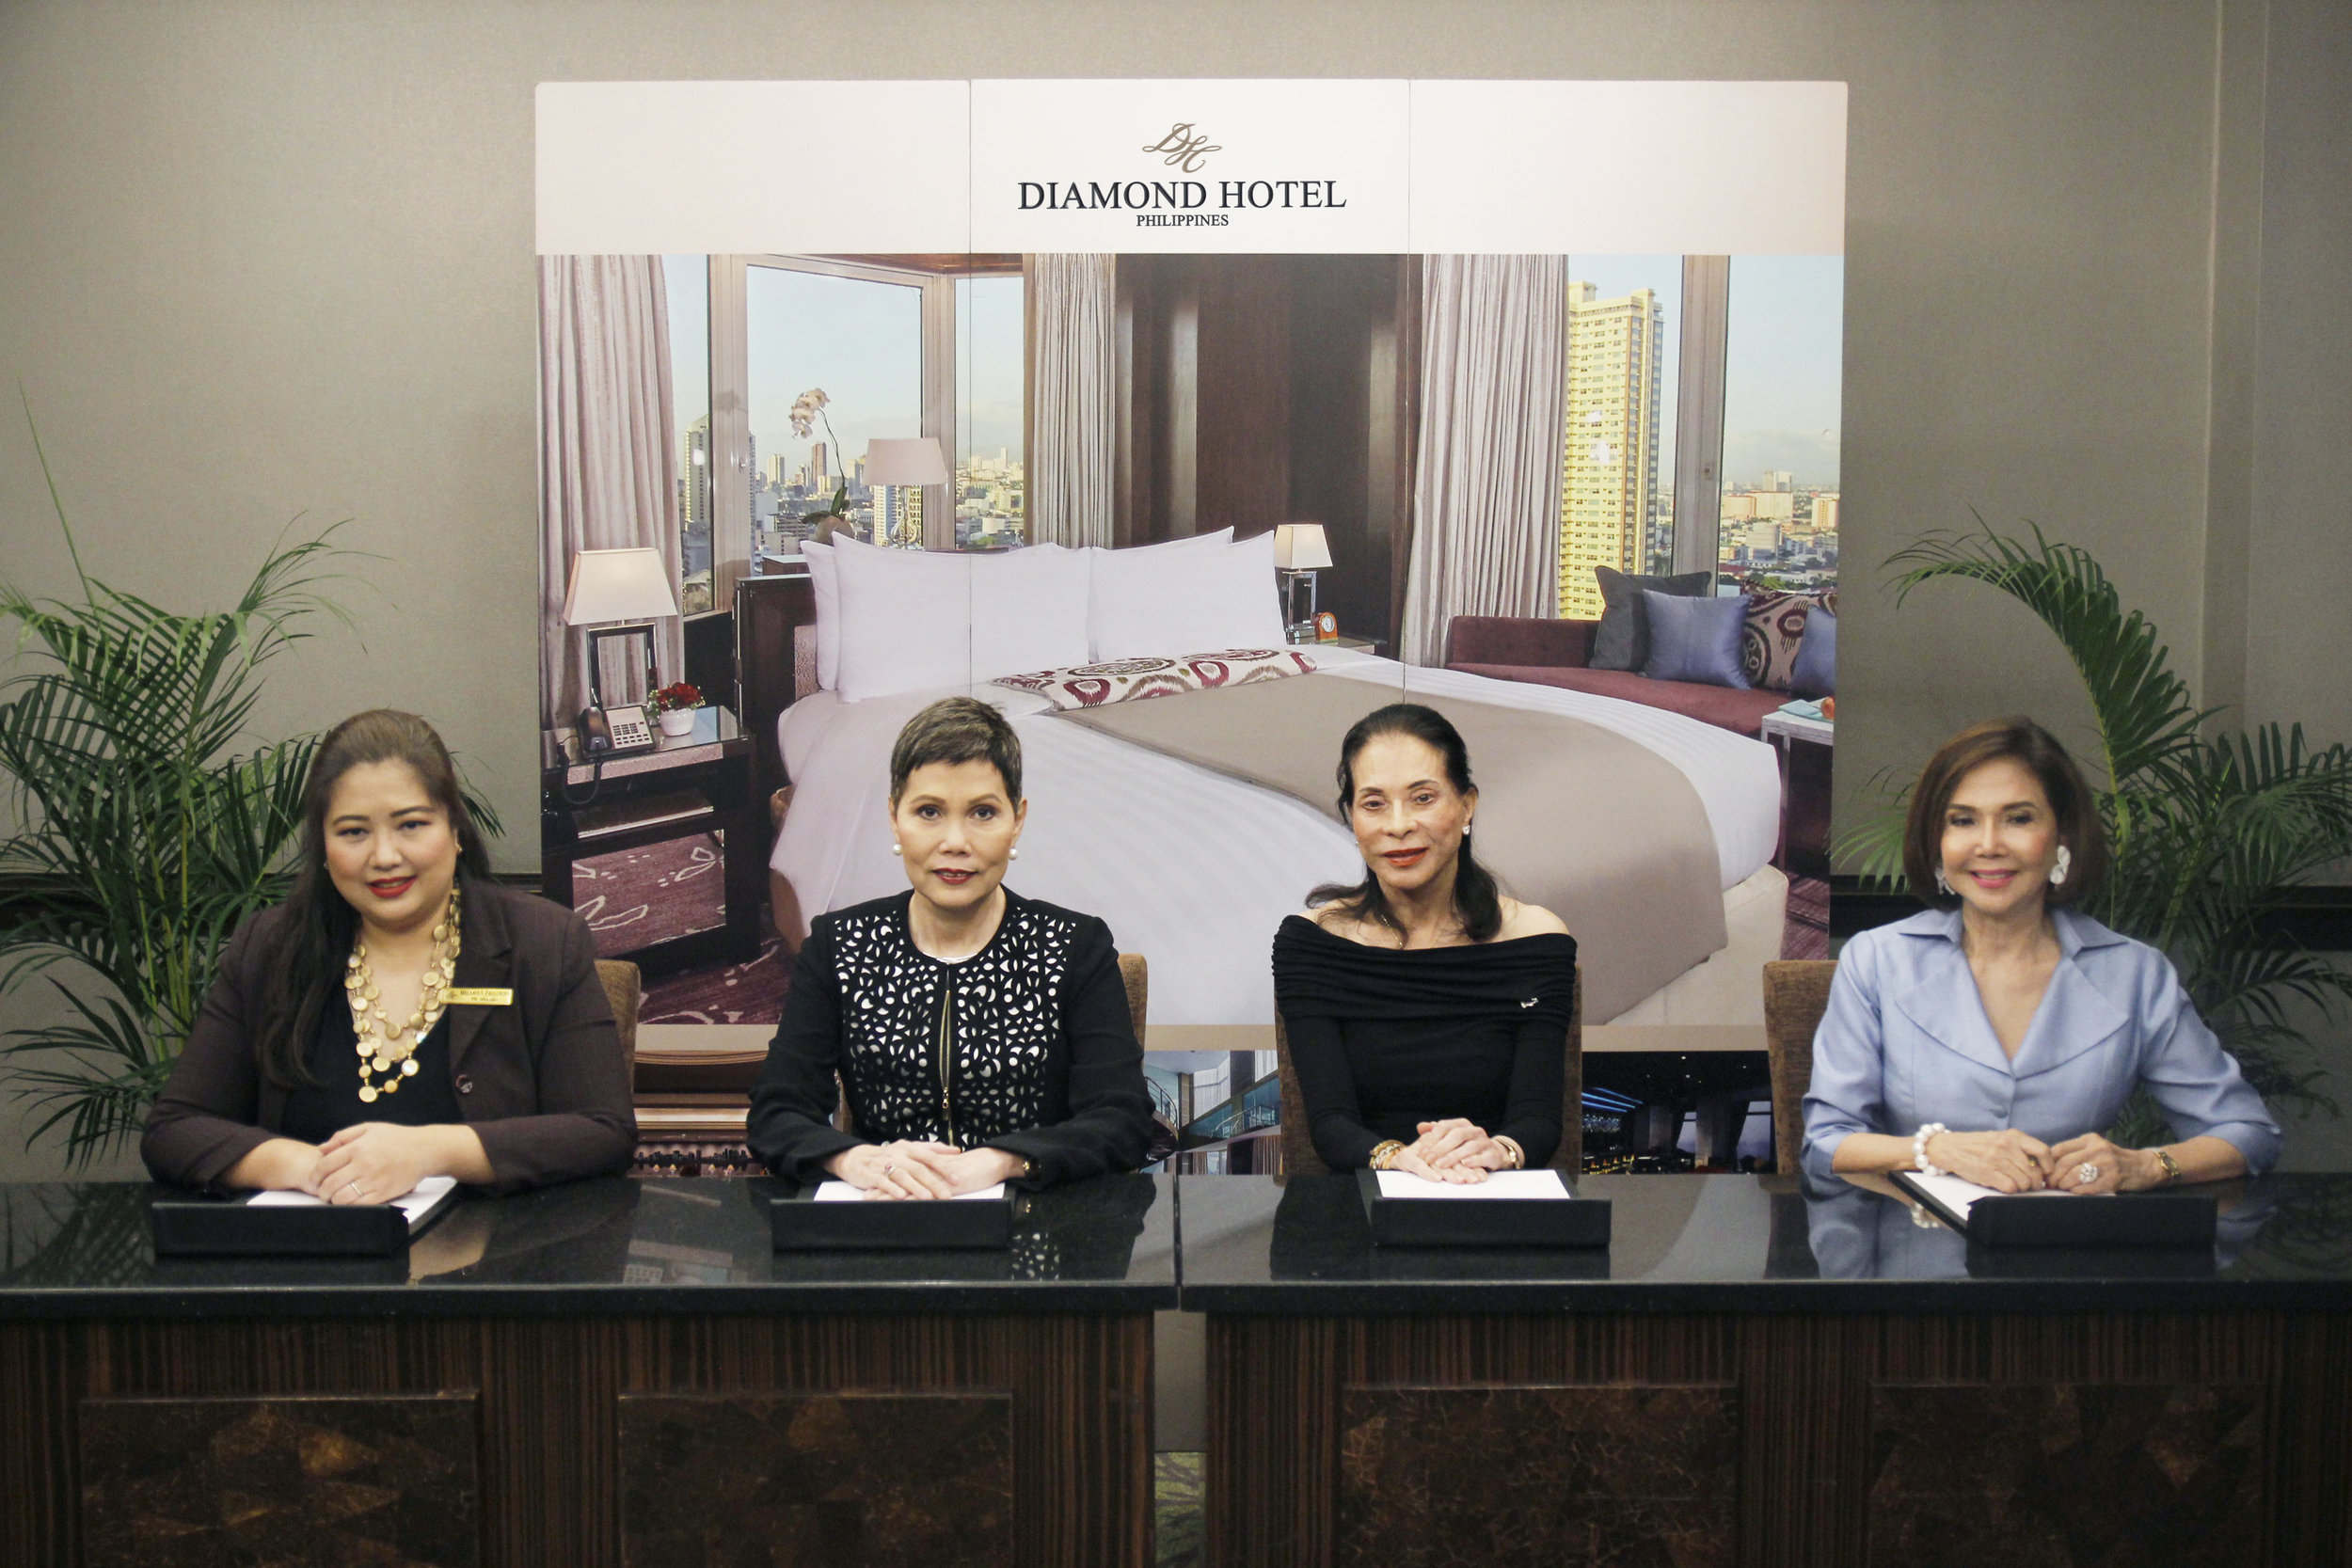 From left are: Melanie Pallorina, public relations manager of Diamond Hotel Philippines; Vanessa Ledesma Suatengco, general manager of Diamond Hotel Philippines; Dr. TingTing Cojuangco, founder of The Elegant Filipinas; and honorary consul general of Monaco, Dr. Fortune Ledesma.